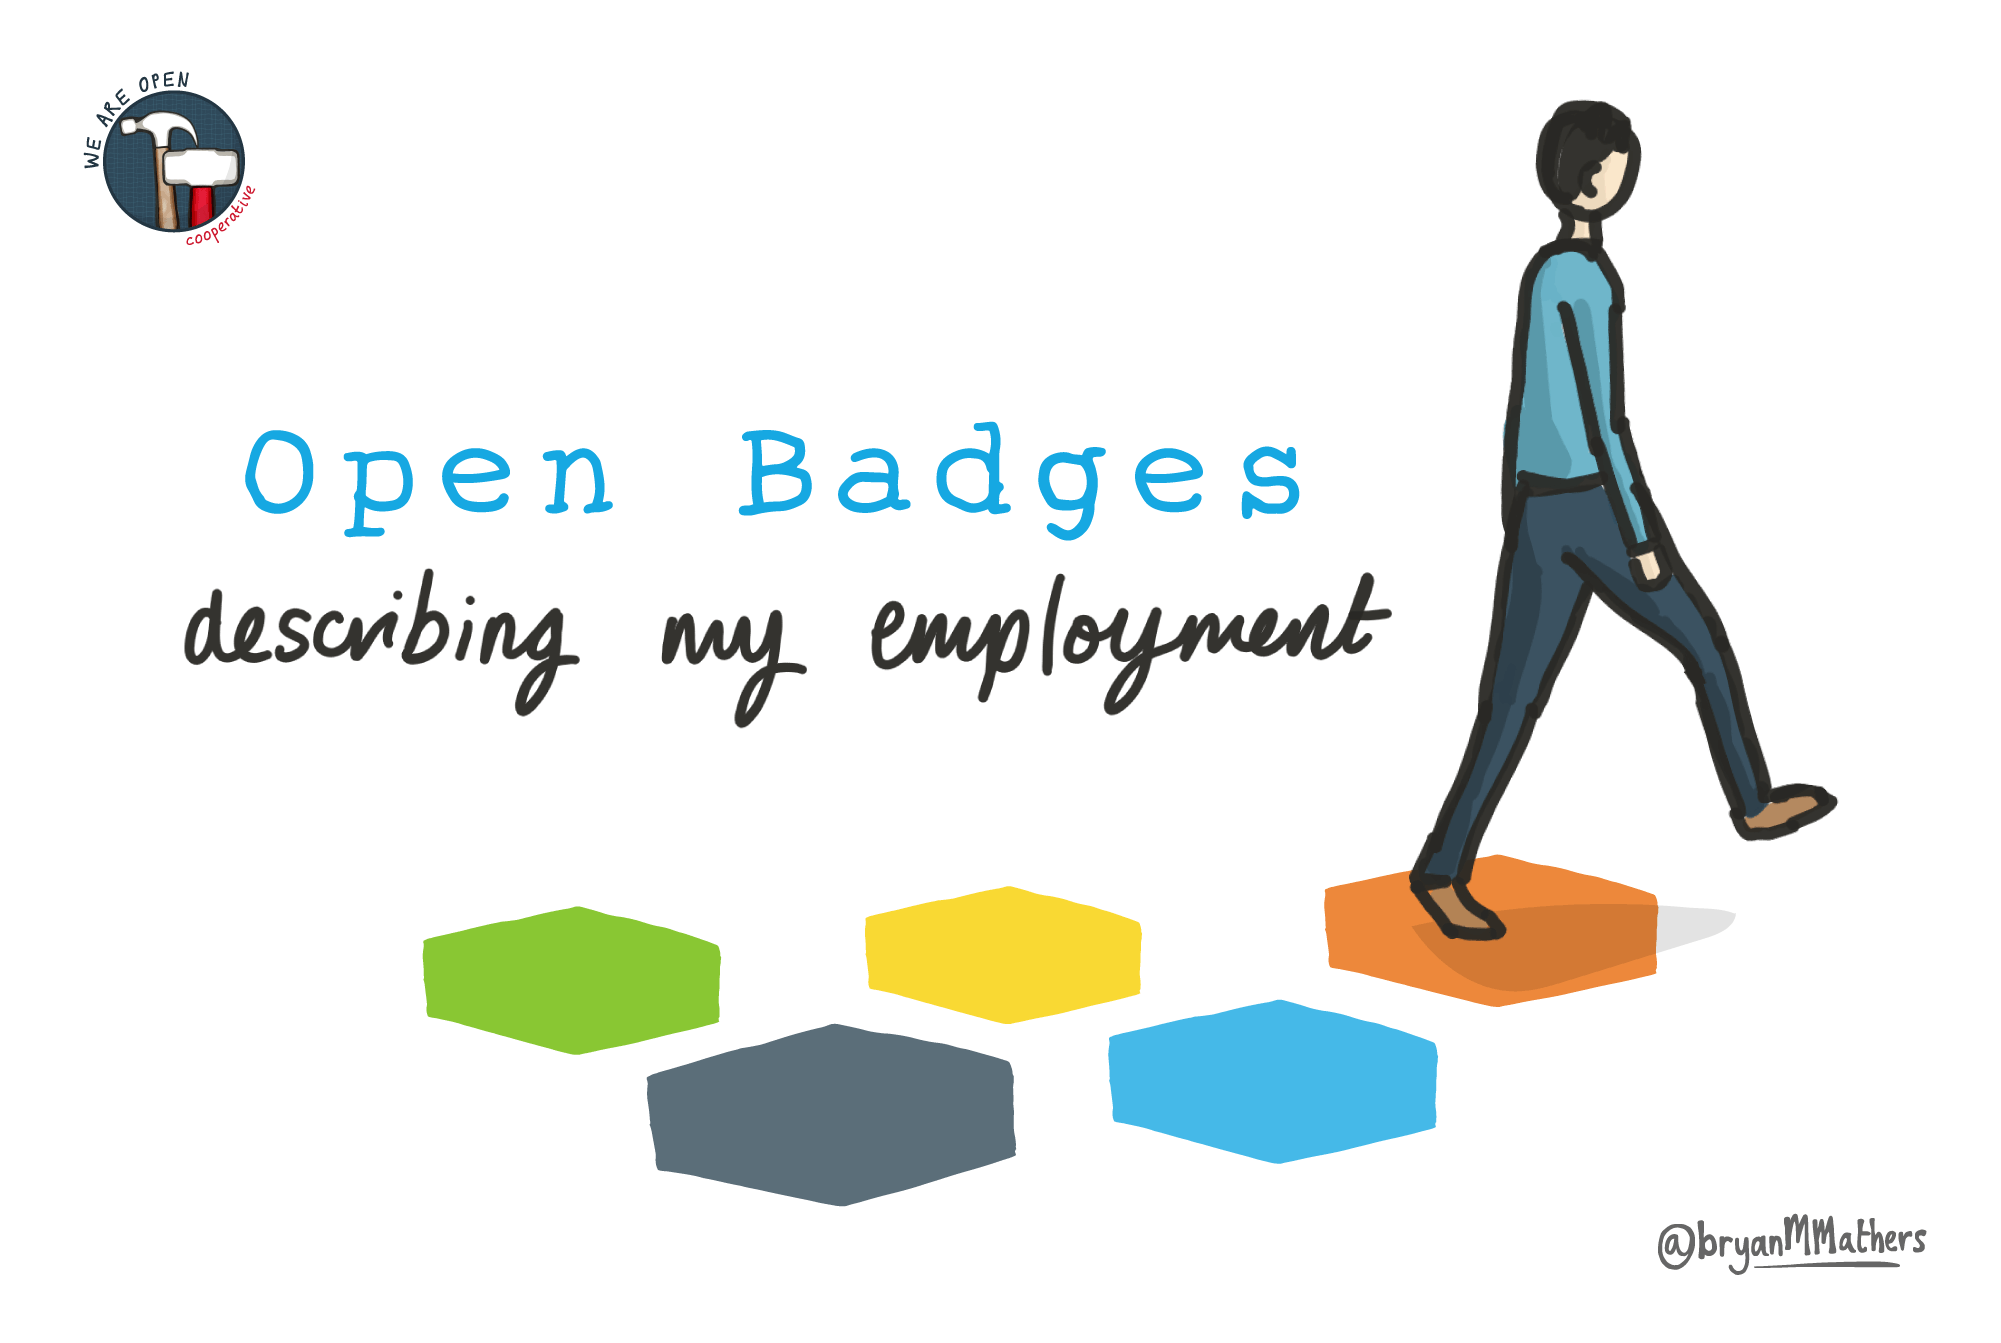 Open Badges – describing my employment